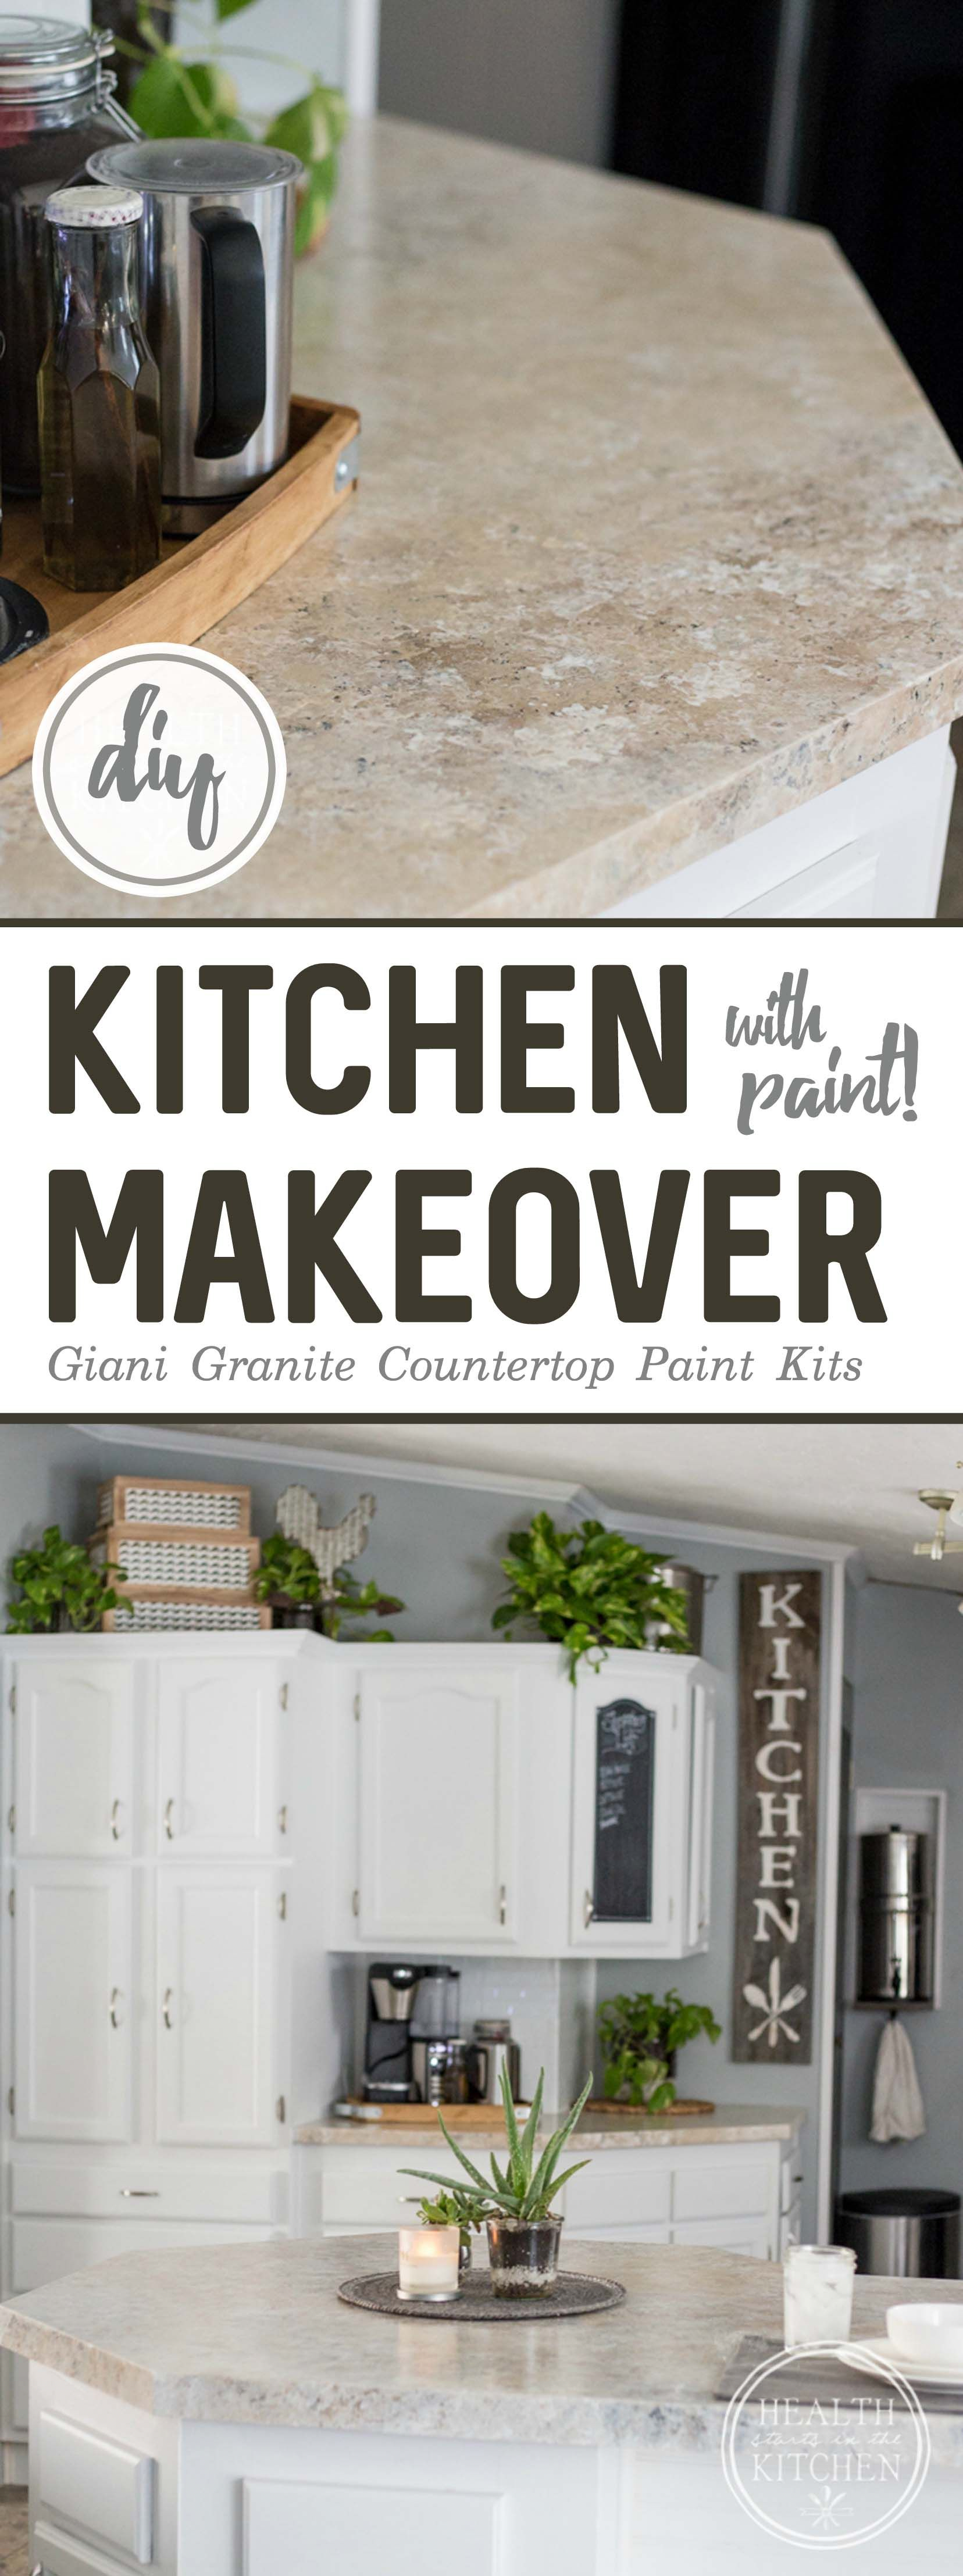 Holiday Kitchen Makeover 500 Budget After Painted Countertops Diy Painting Countertops Kitchen Makeover